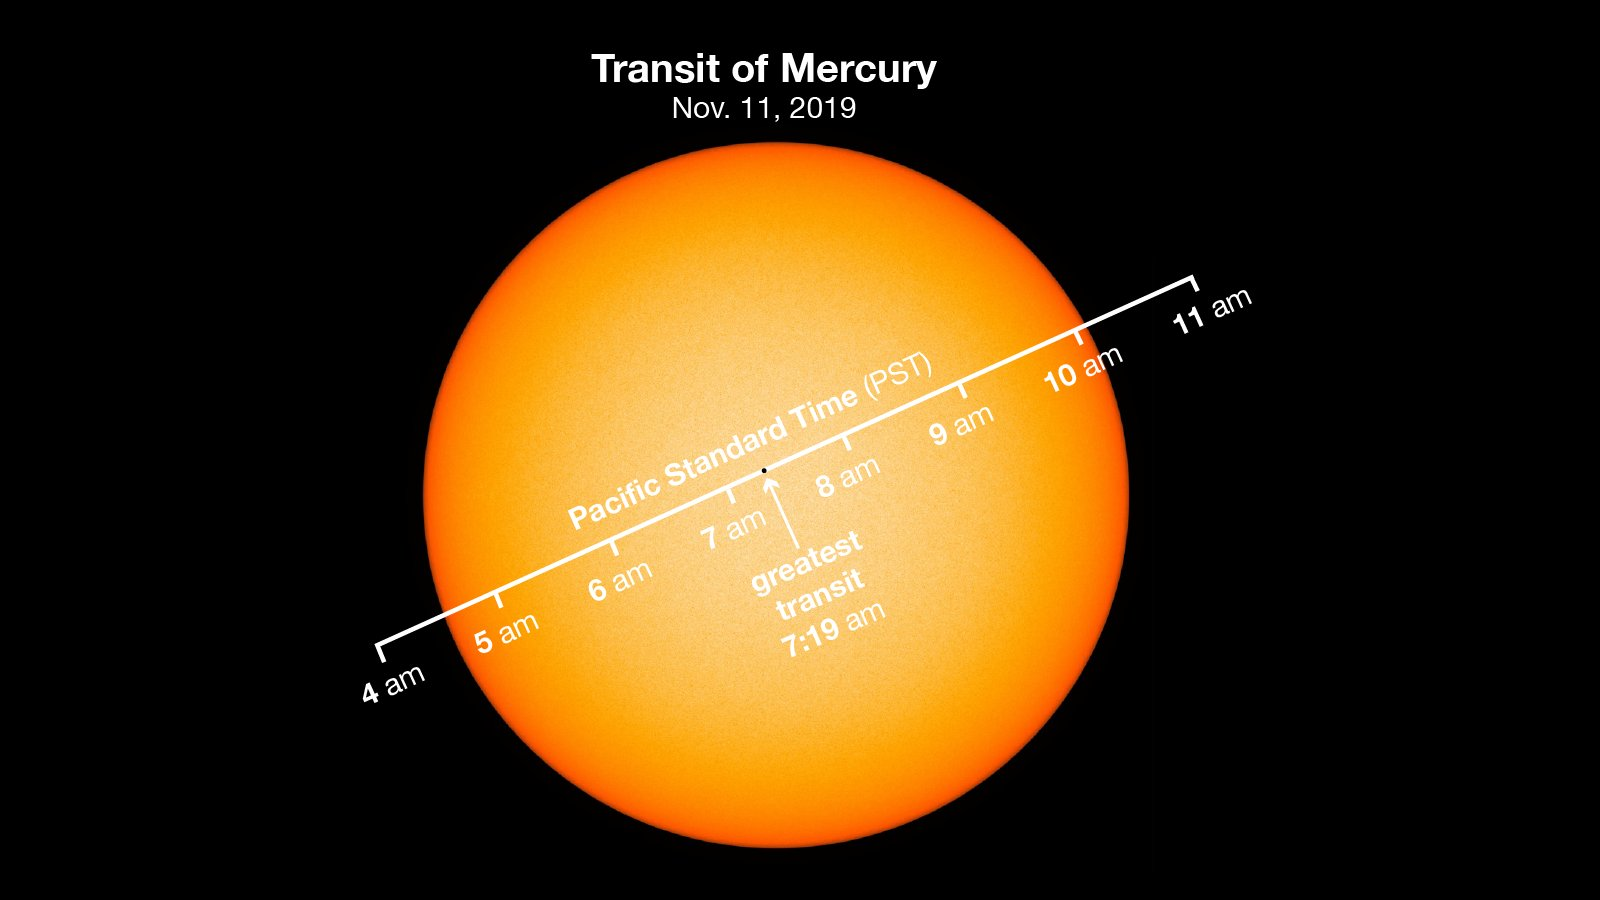 In this composite image provided by NASA, the planet Mercury passes directly between the sun and Earth, which is expected to occur on Nov. 11, 2019.